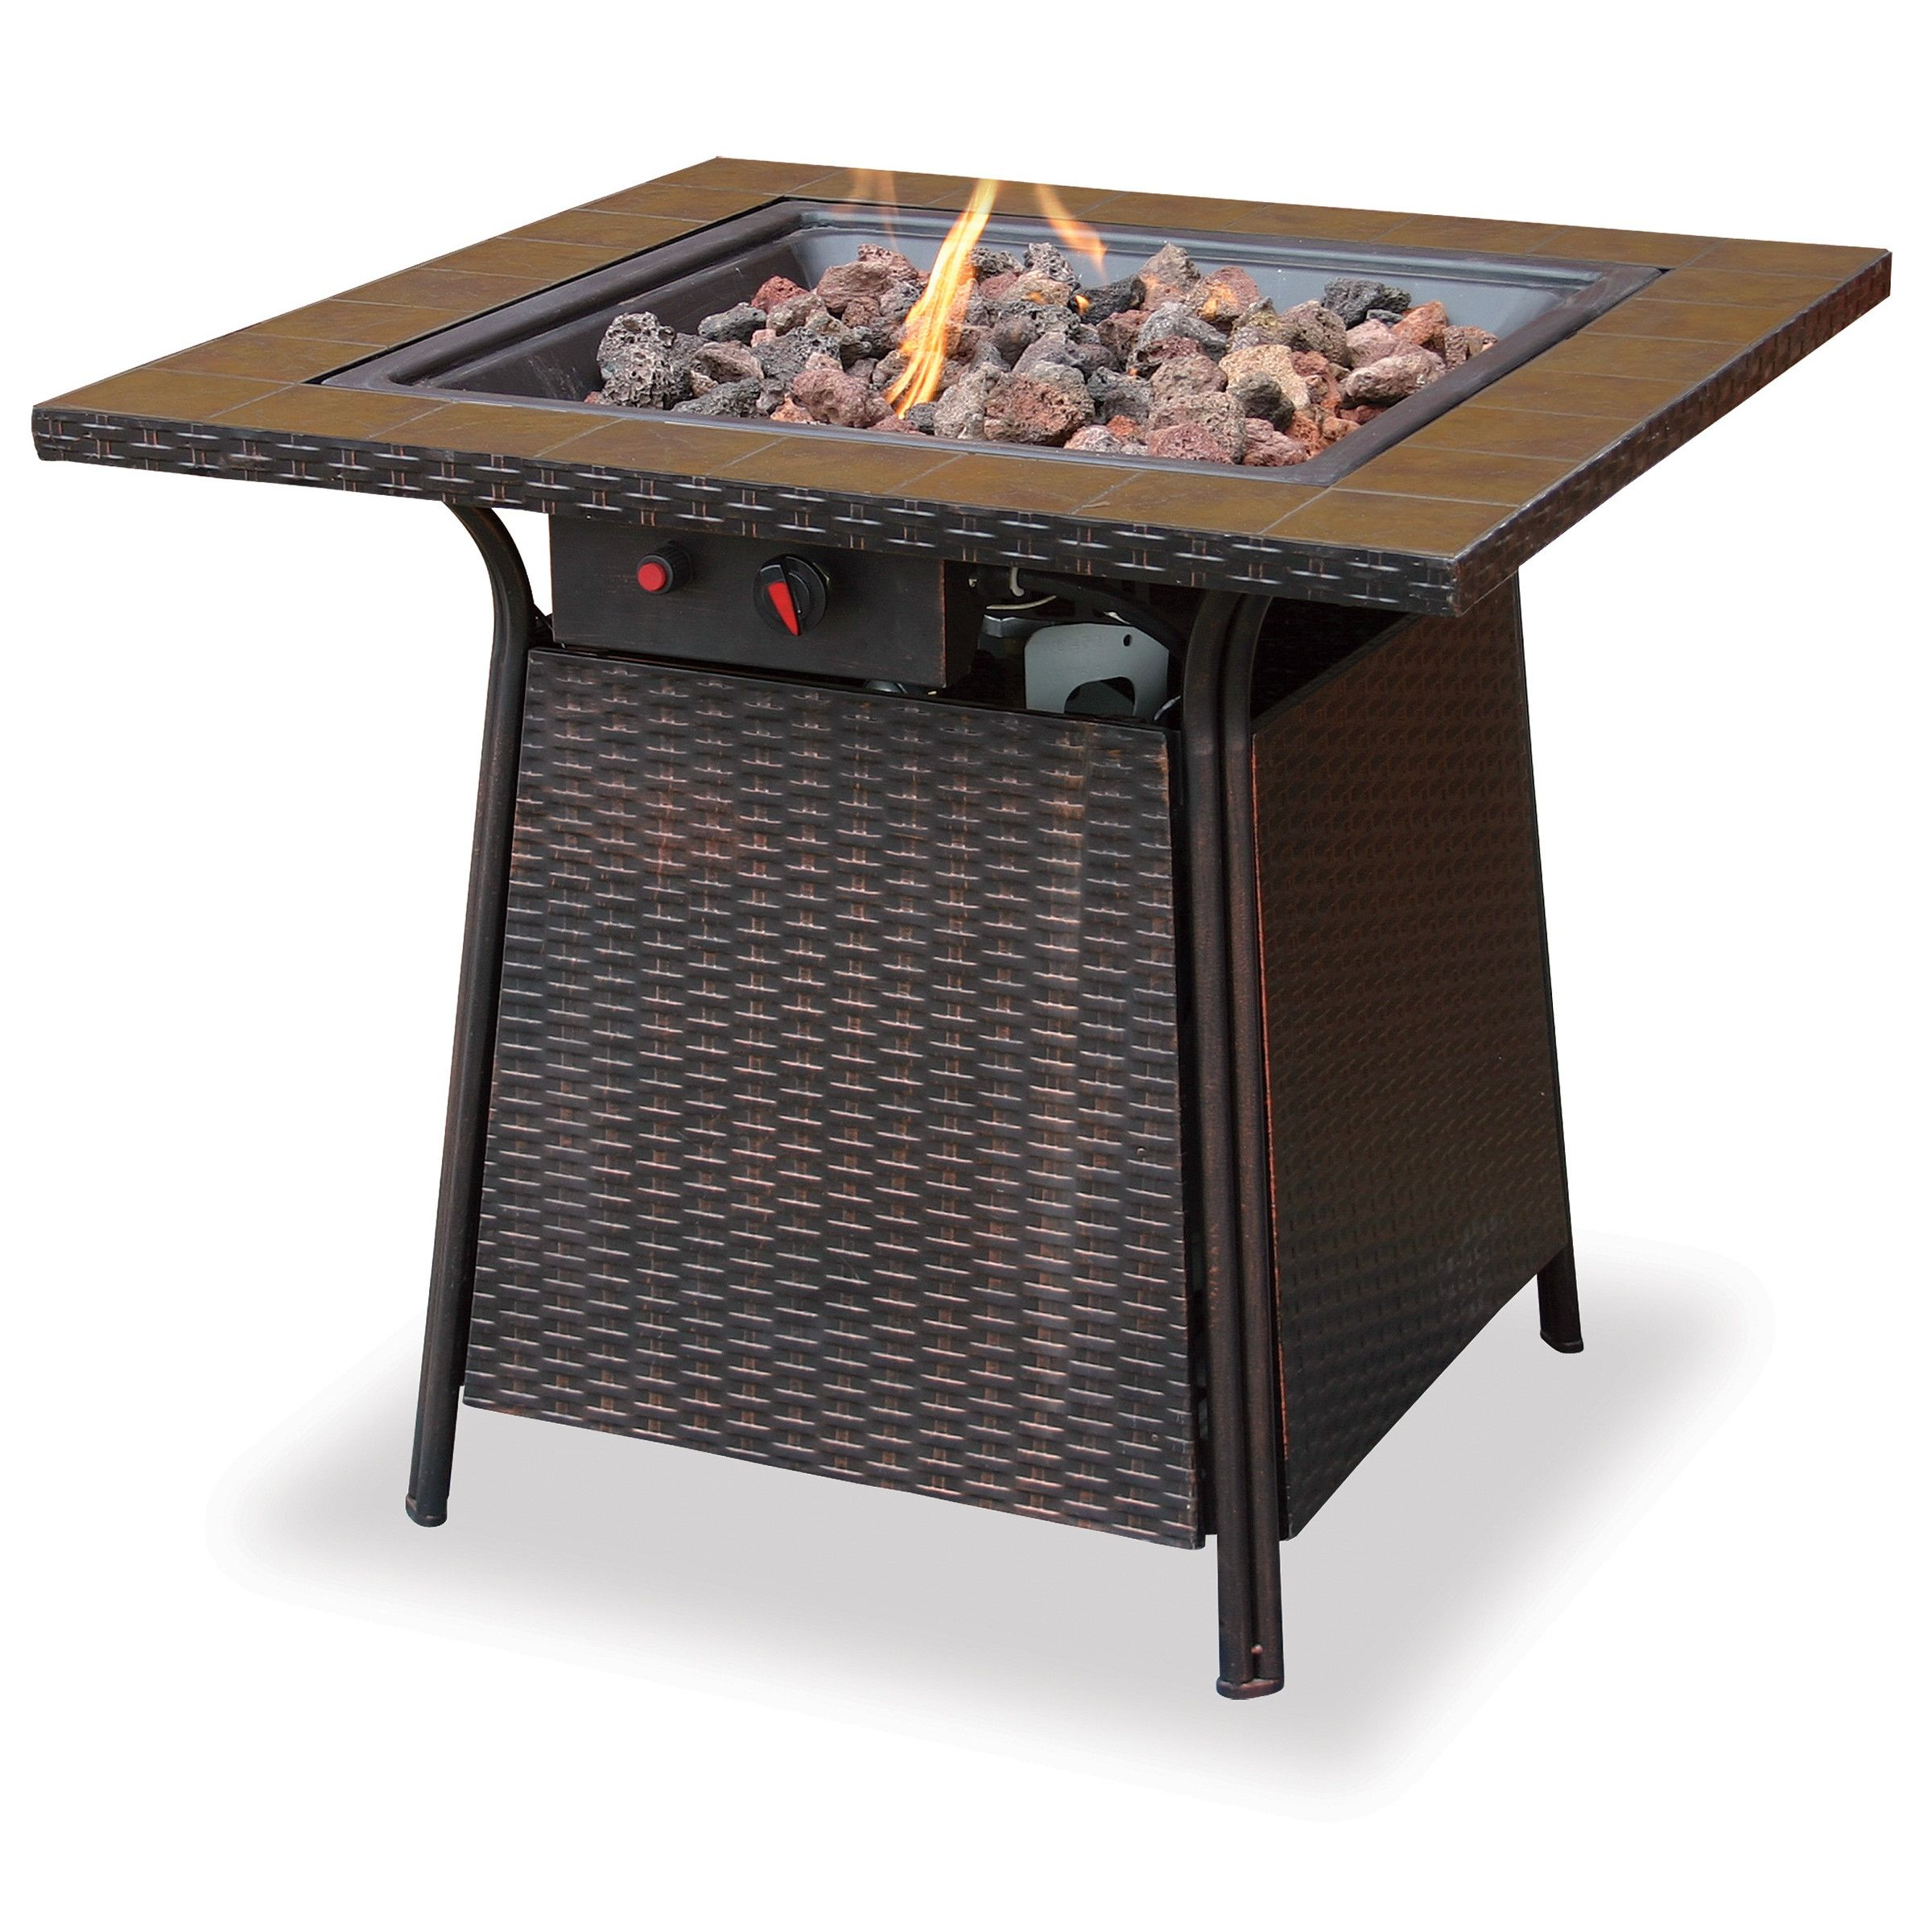 Blue Rhino Uniflame Tile Mantel Gas Firebowl Propane Fire Pit Table Gas Fire Pit Table Gas Fire Pits Outdoor